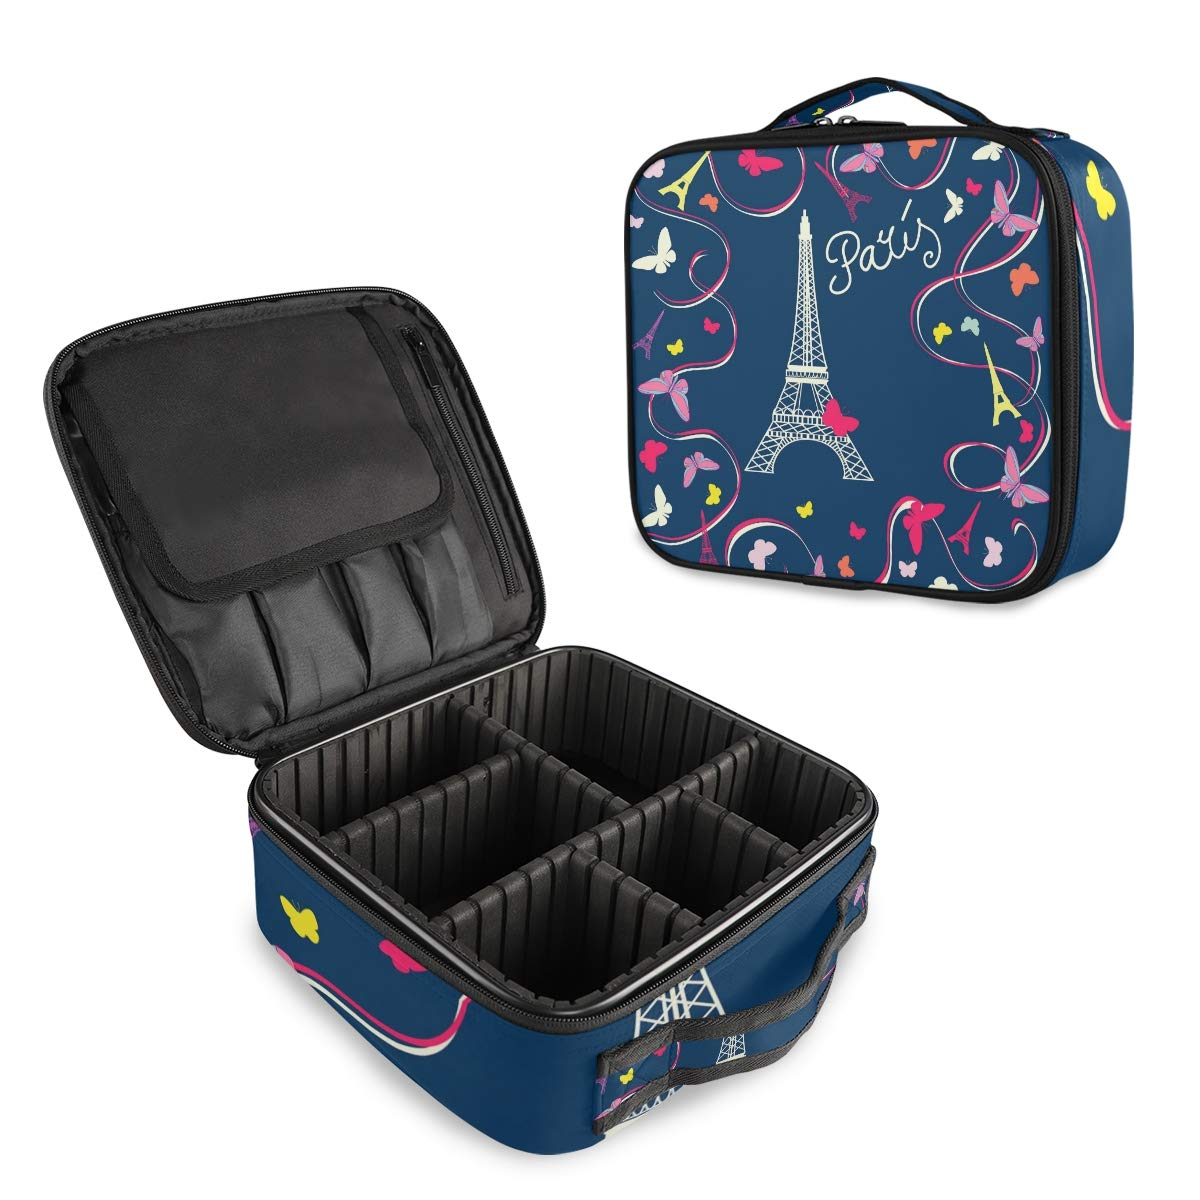 ALAZA Ranking TOP18 Paris Eiffel Tower Butterfly Case Over item handling ☆ Makeup Cosmetic Floral O